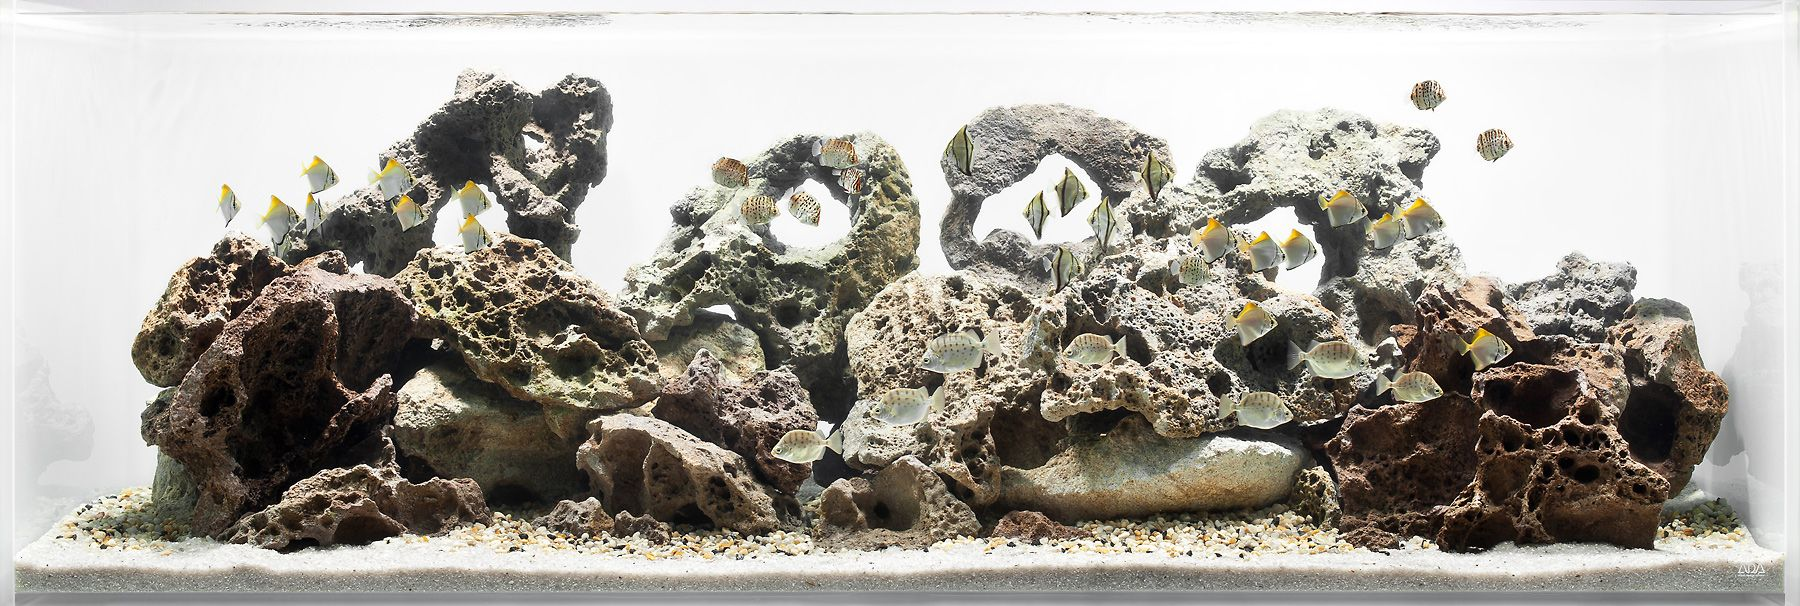 1aquarium_rocks_fishtank_copy